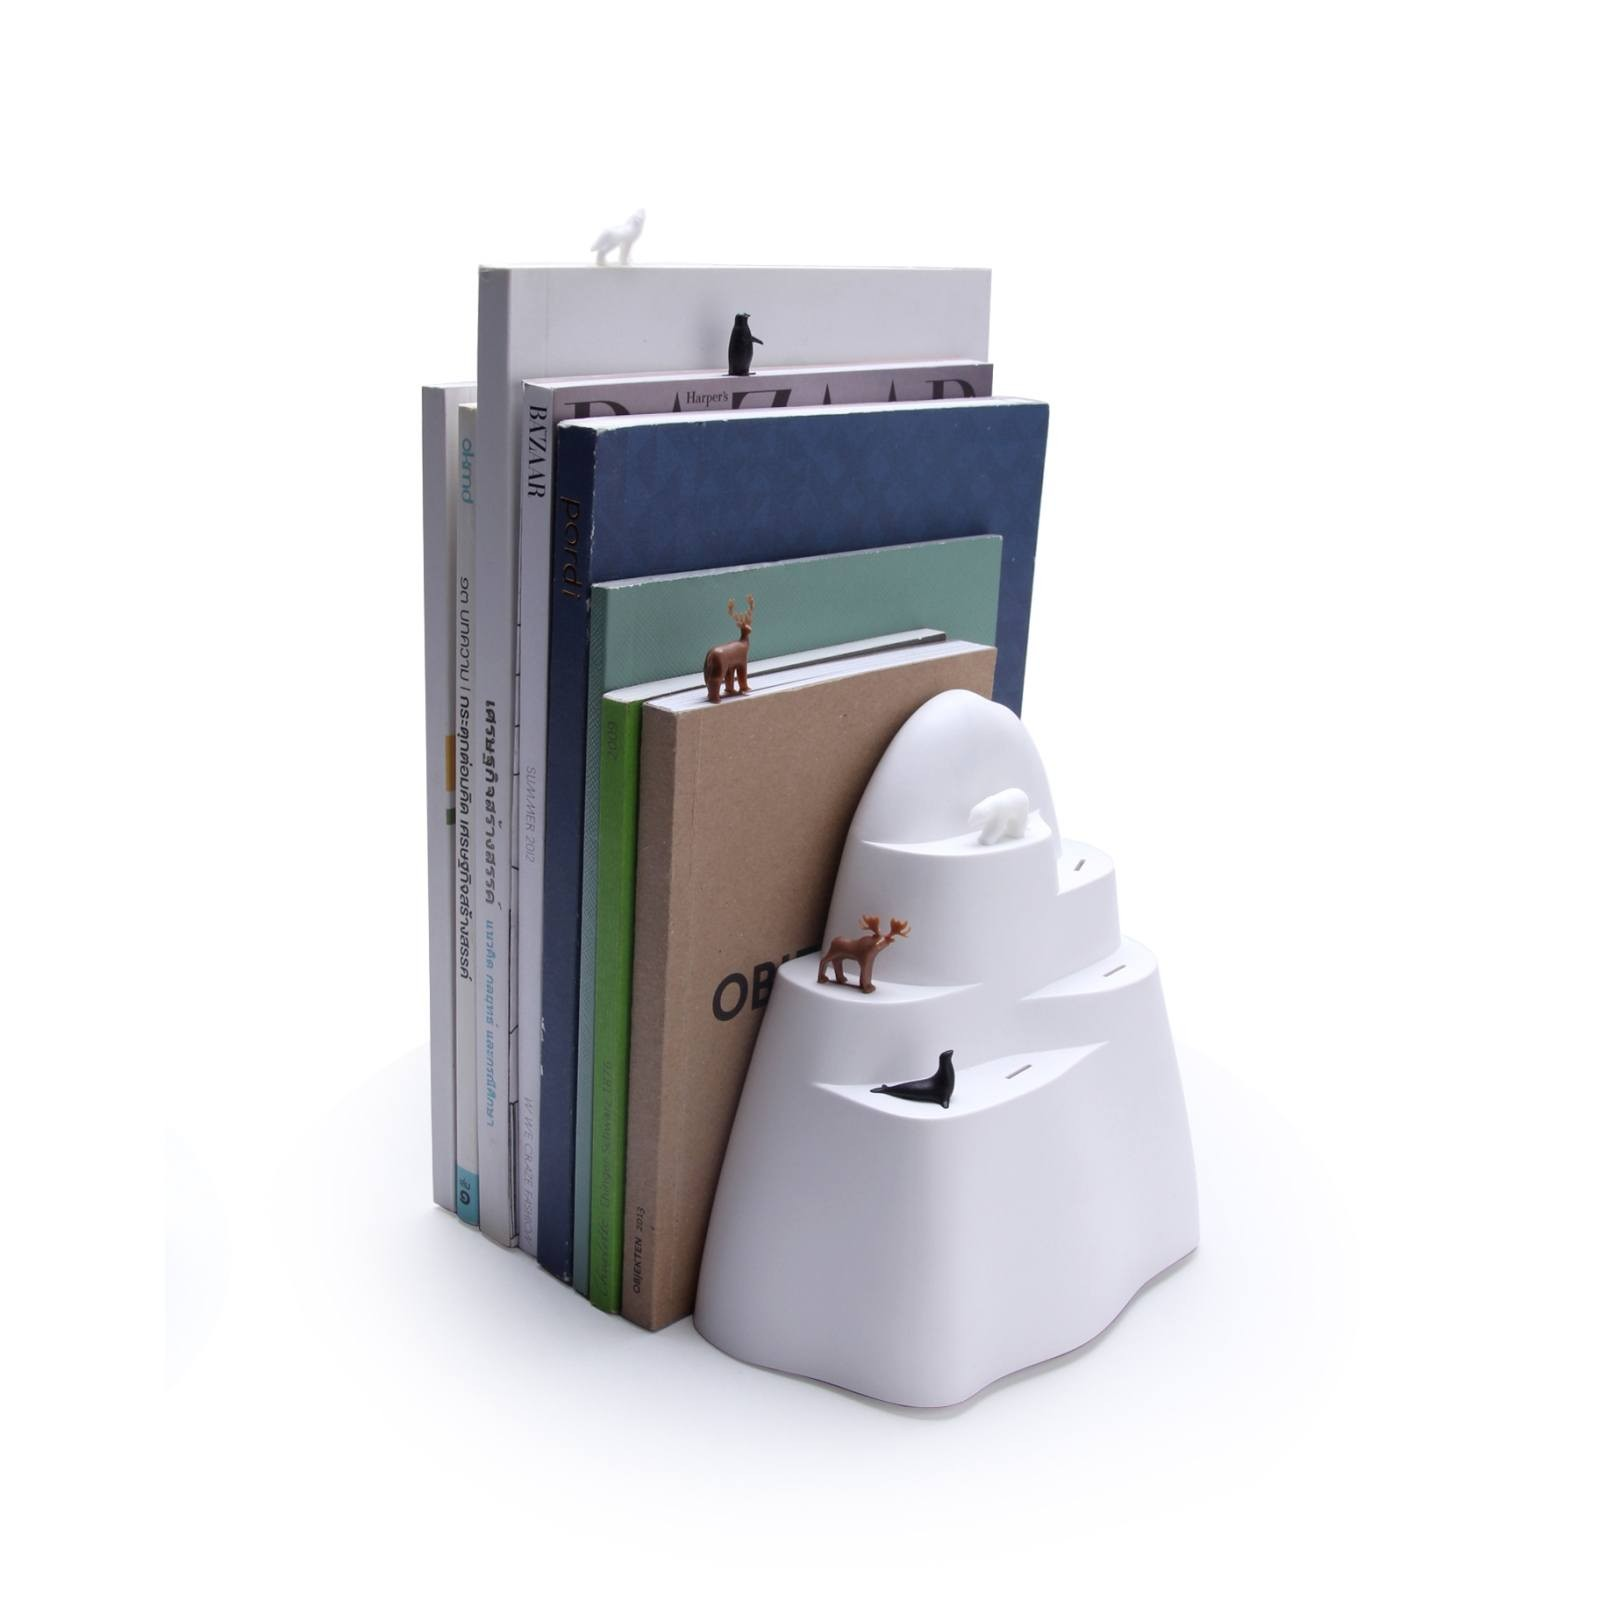 Book Iceberg Bookend & Bookmarks Set - Qualy